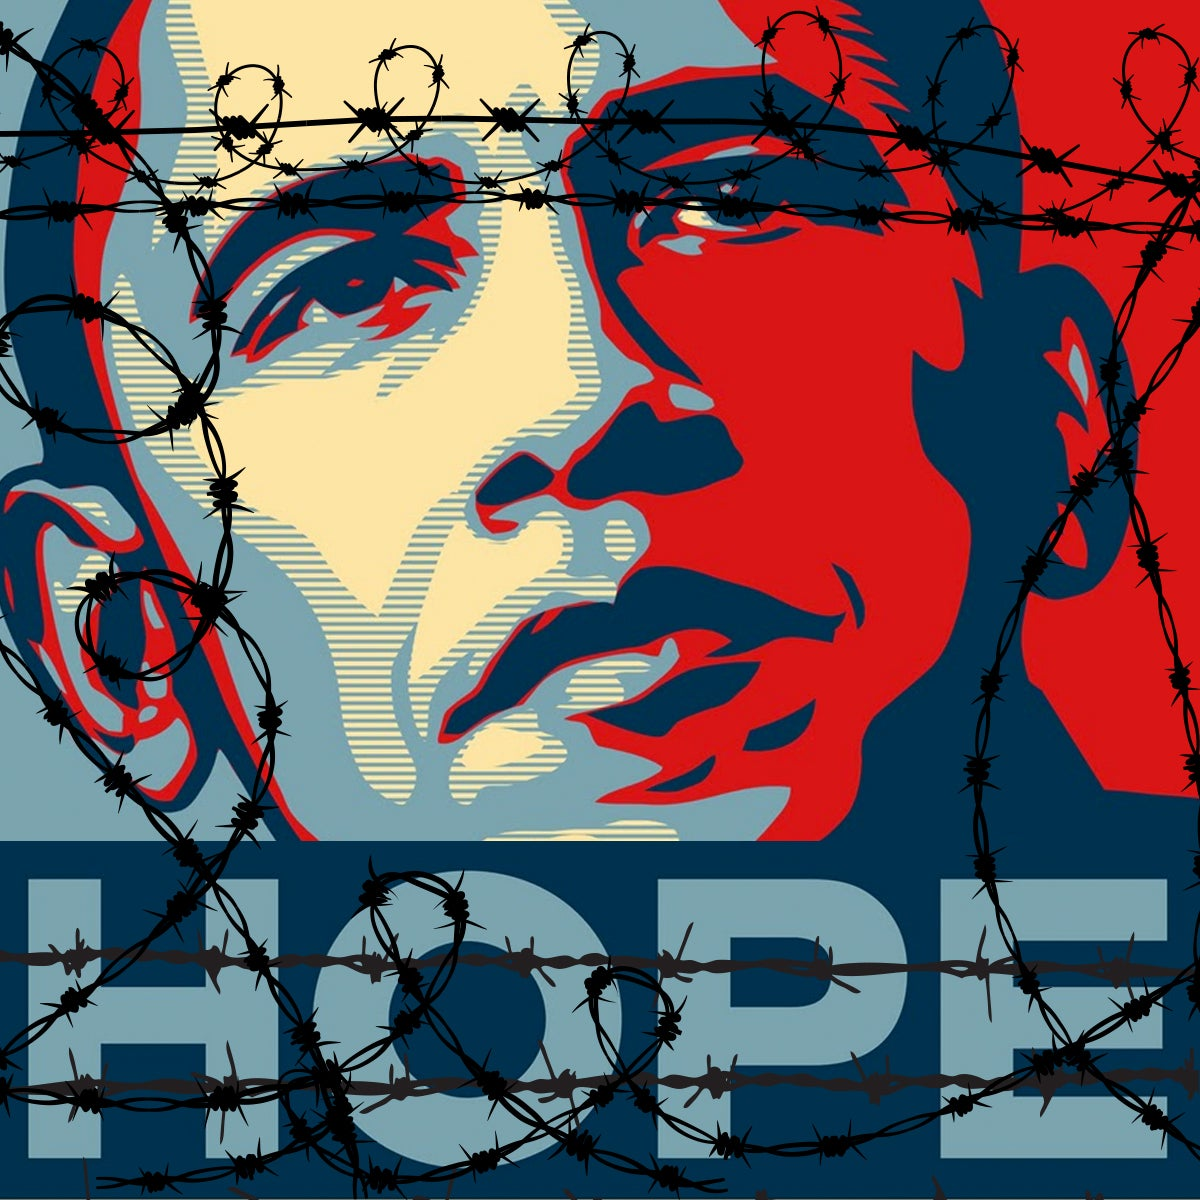 We Lost Hope And Gained Fear In Post-Obama America